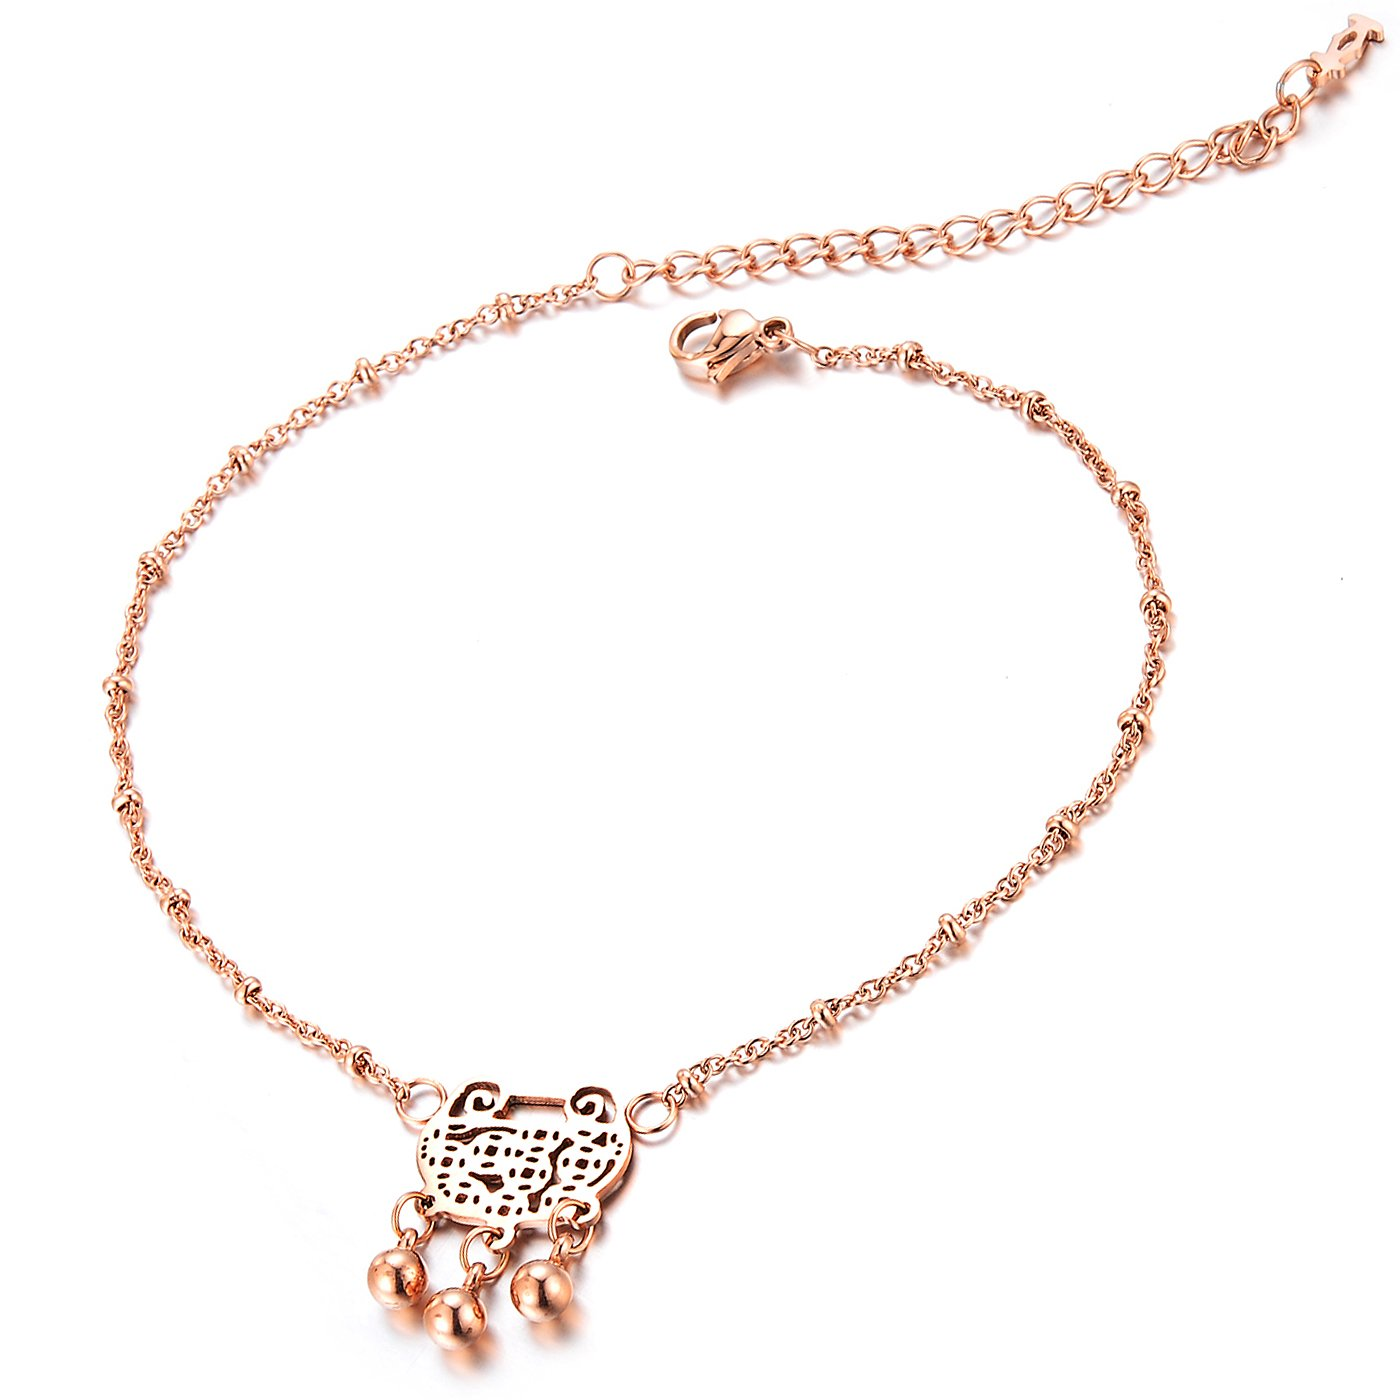 Geminis Fashion Jewelry Wealth Lock Bell Rose Gold Plated Stainless Steel Women's Anklets(With Gift Box)